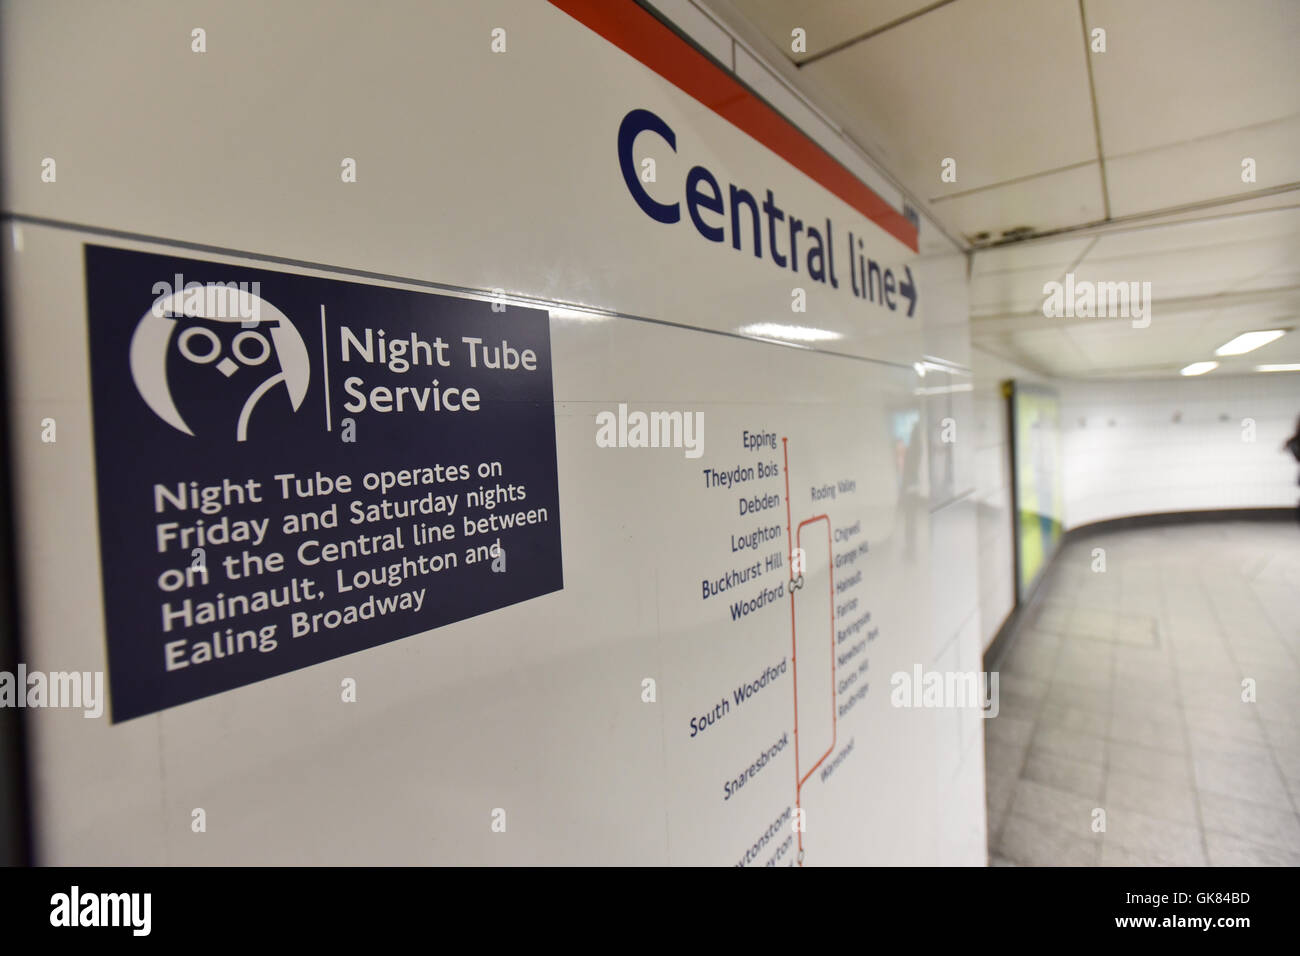 London, UK. 19th August 2016. Night Tube Service begins tonight on the Victoria and Central Lines. - Stock Image